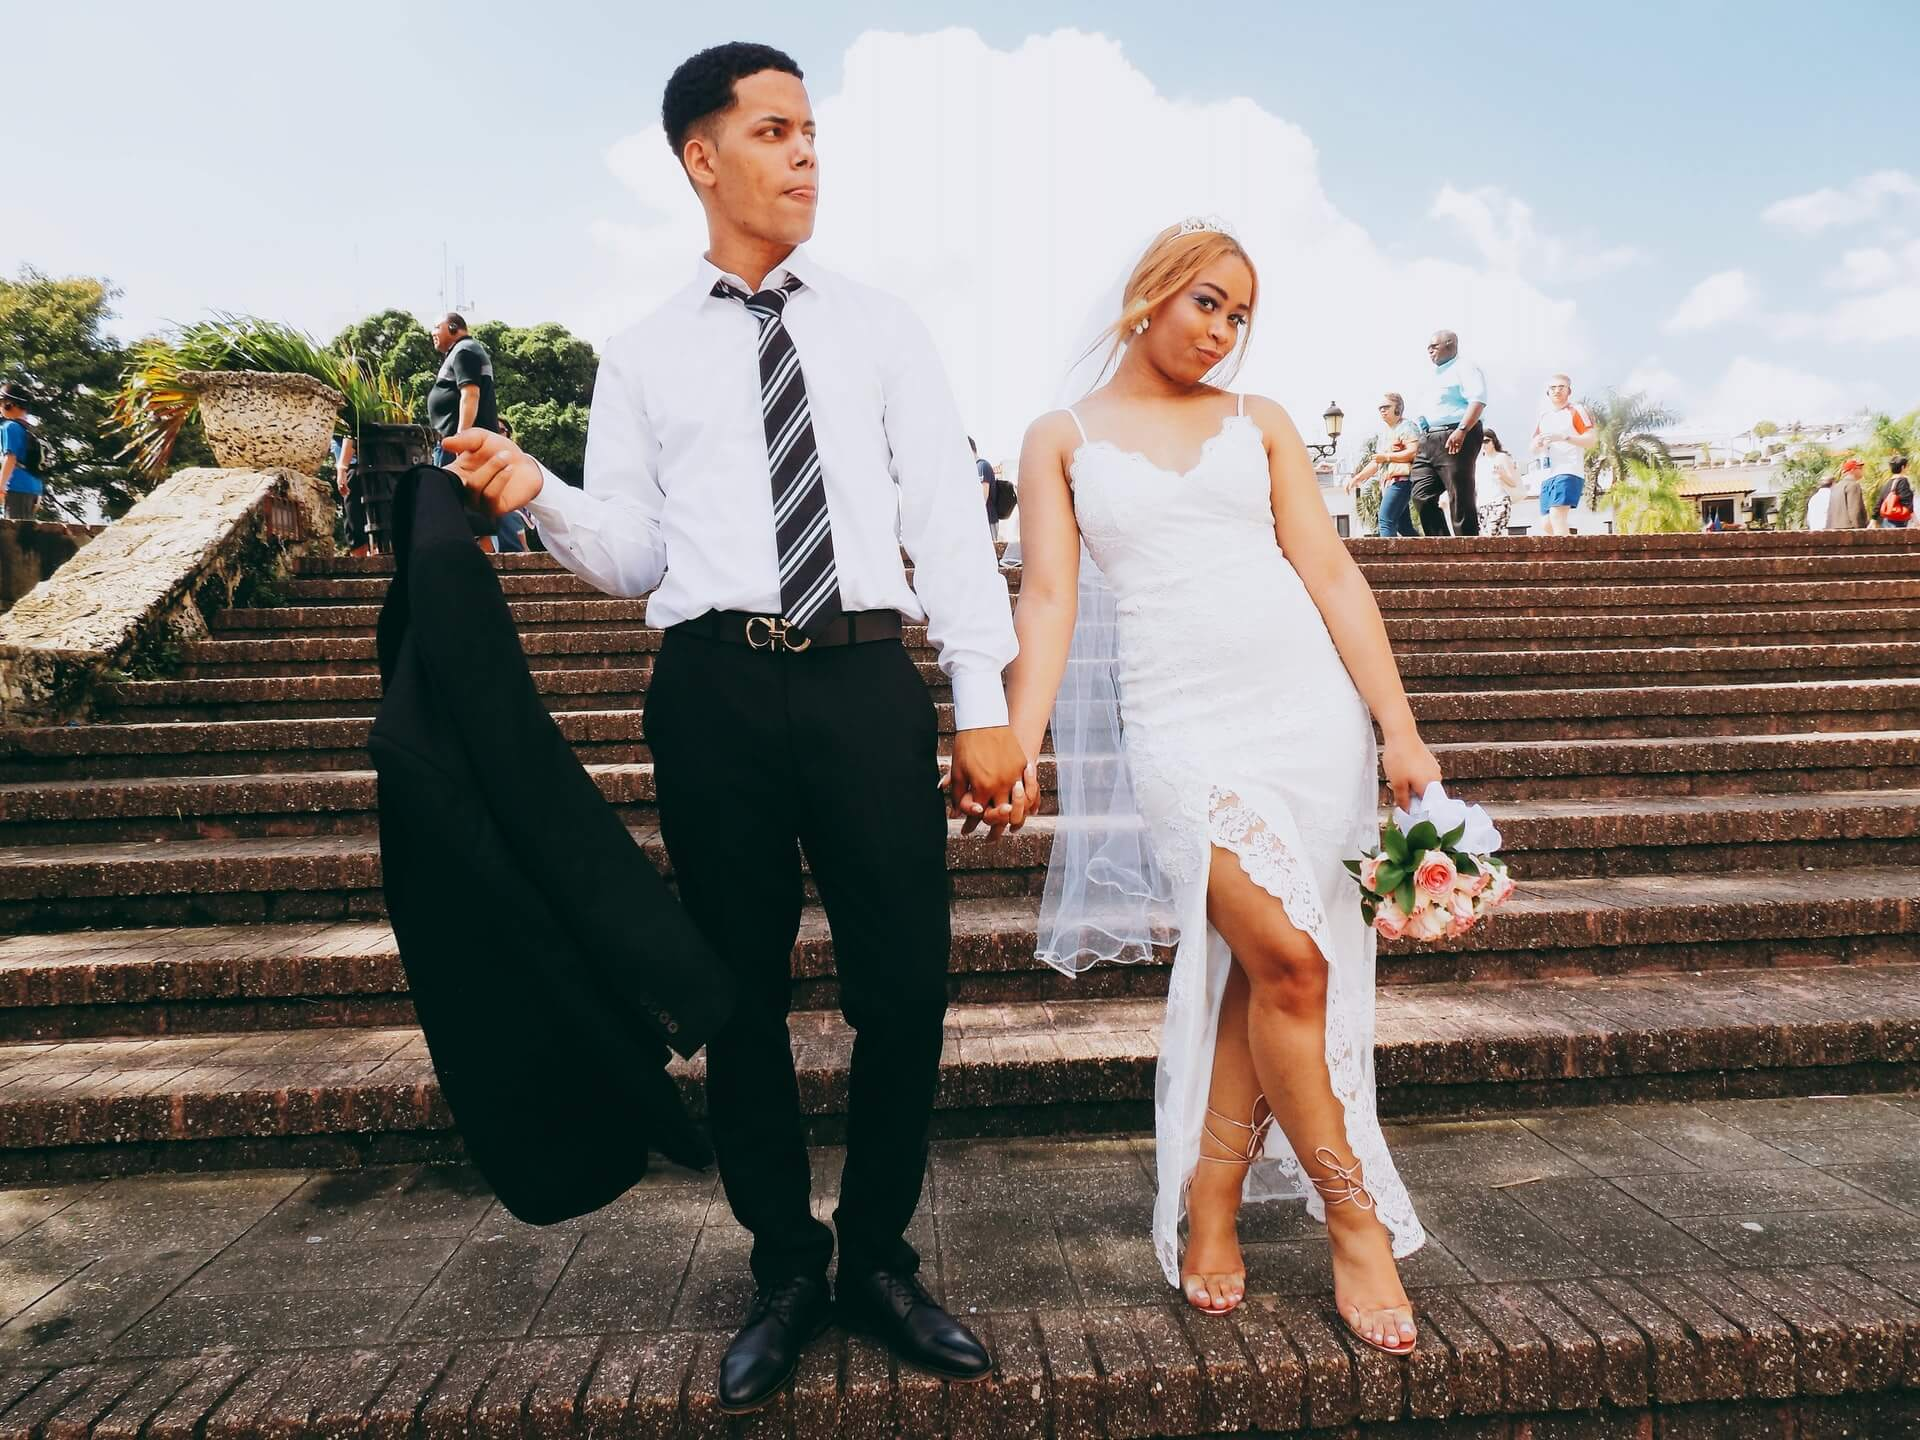 commitment-mean-couple-walking-down-stairs